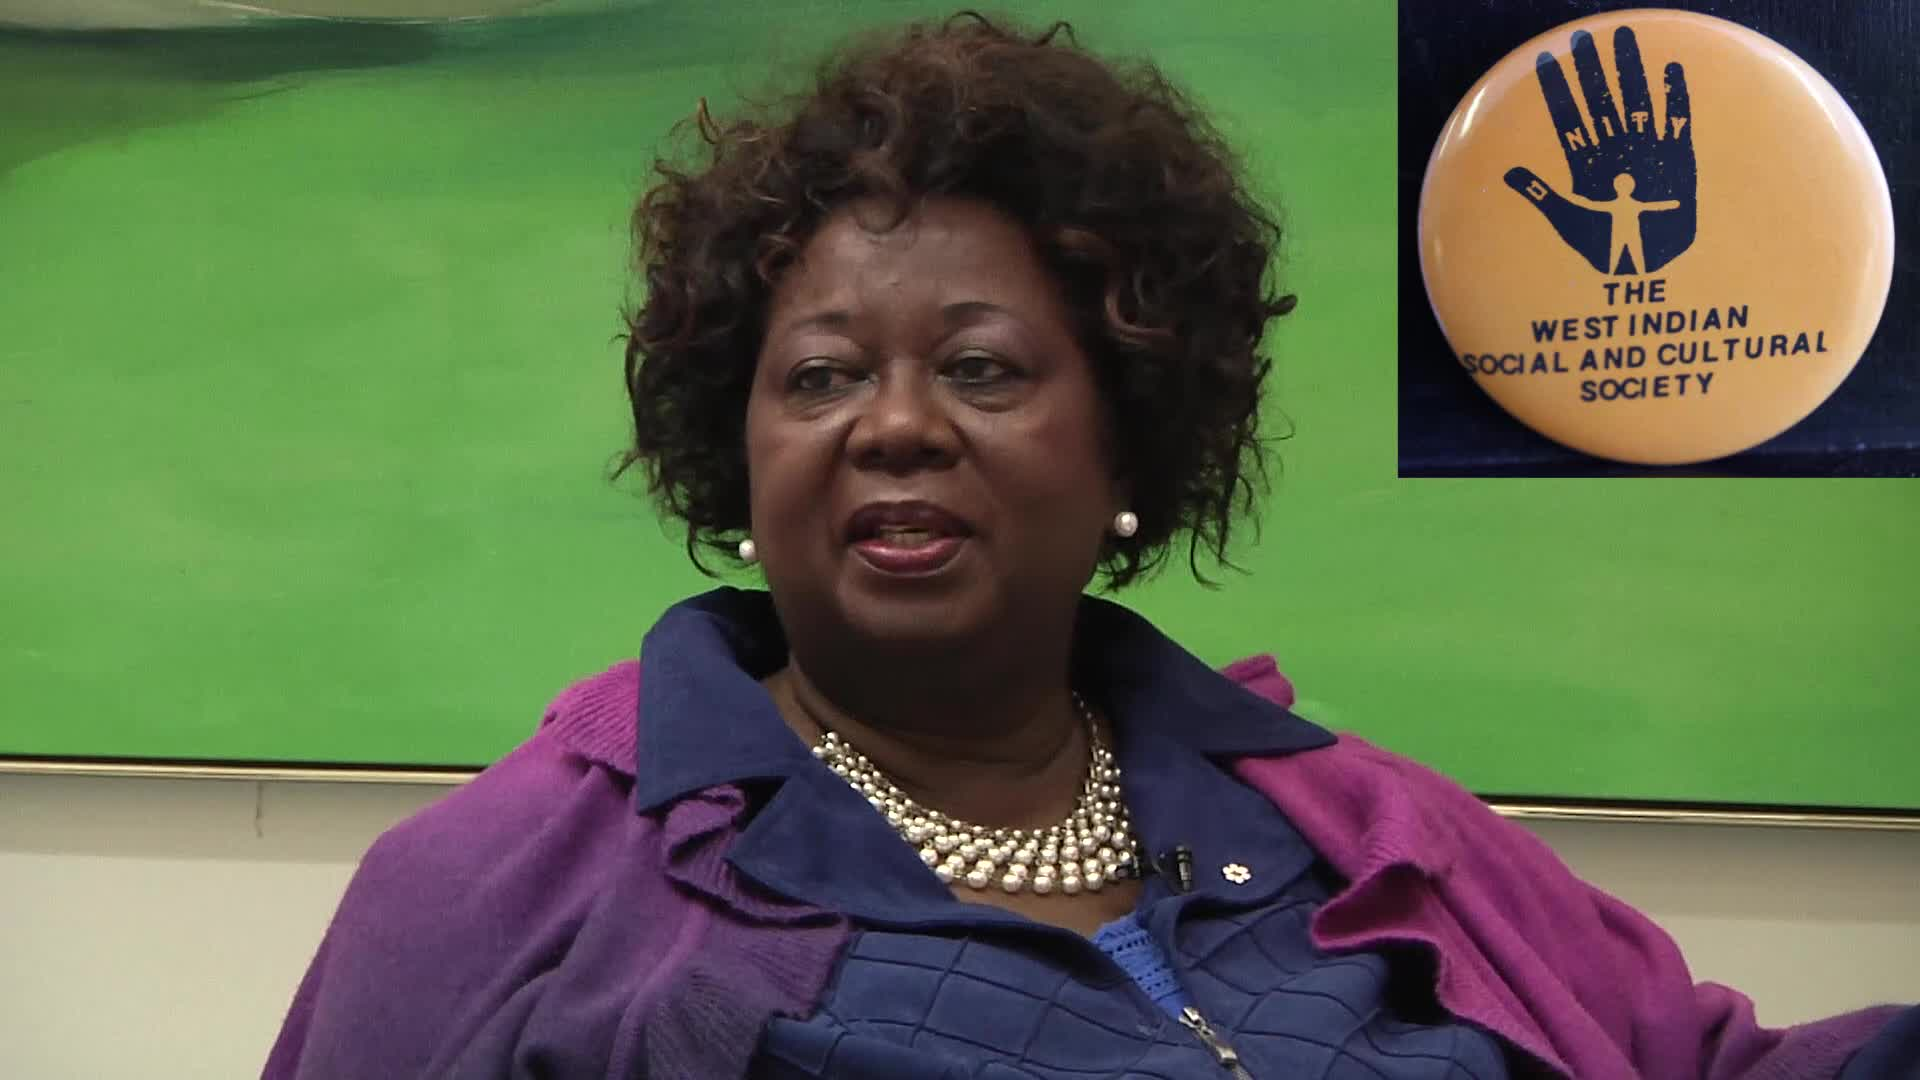 Jean Augustine interview: West Indian Social and Cultural Society button